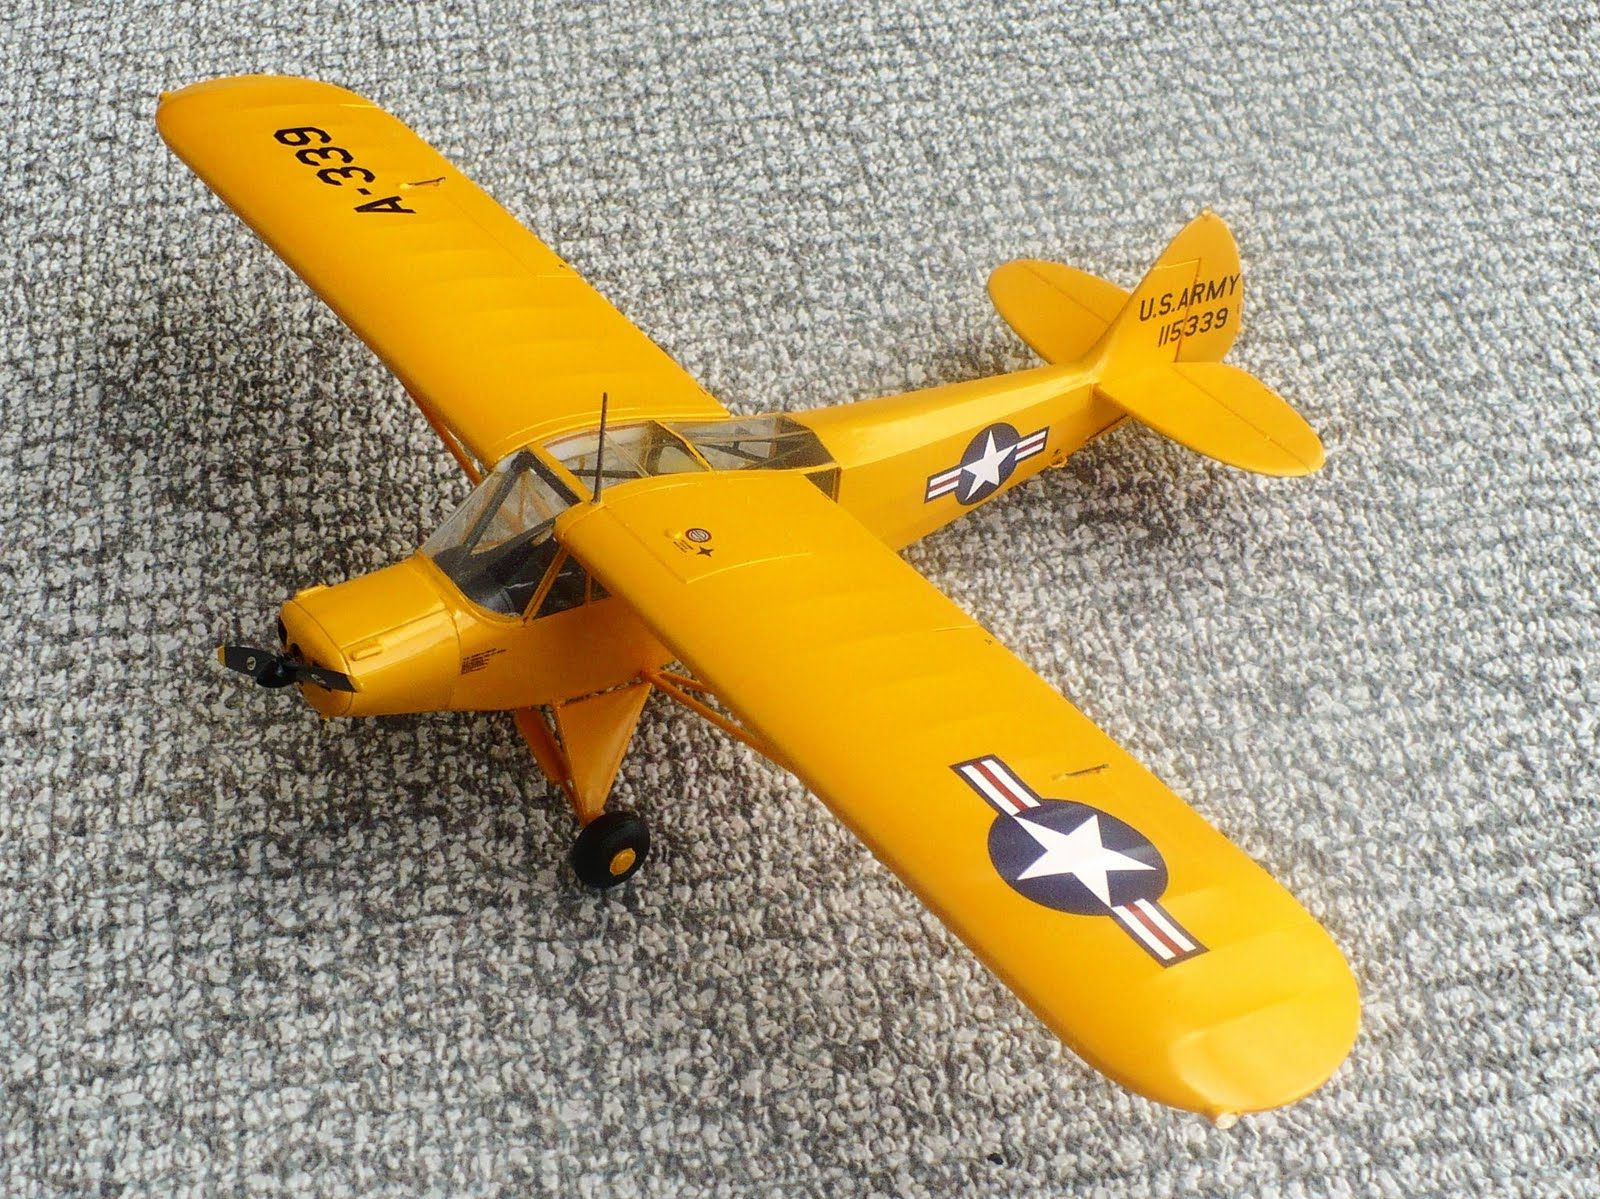 The Great Canadian Model Builders Web Page!: Super Cub